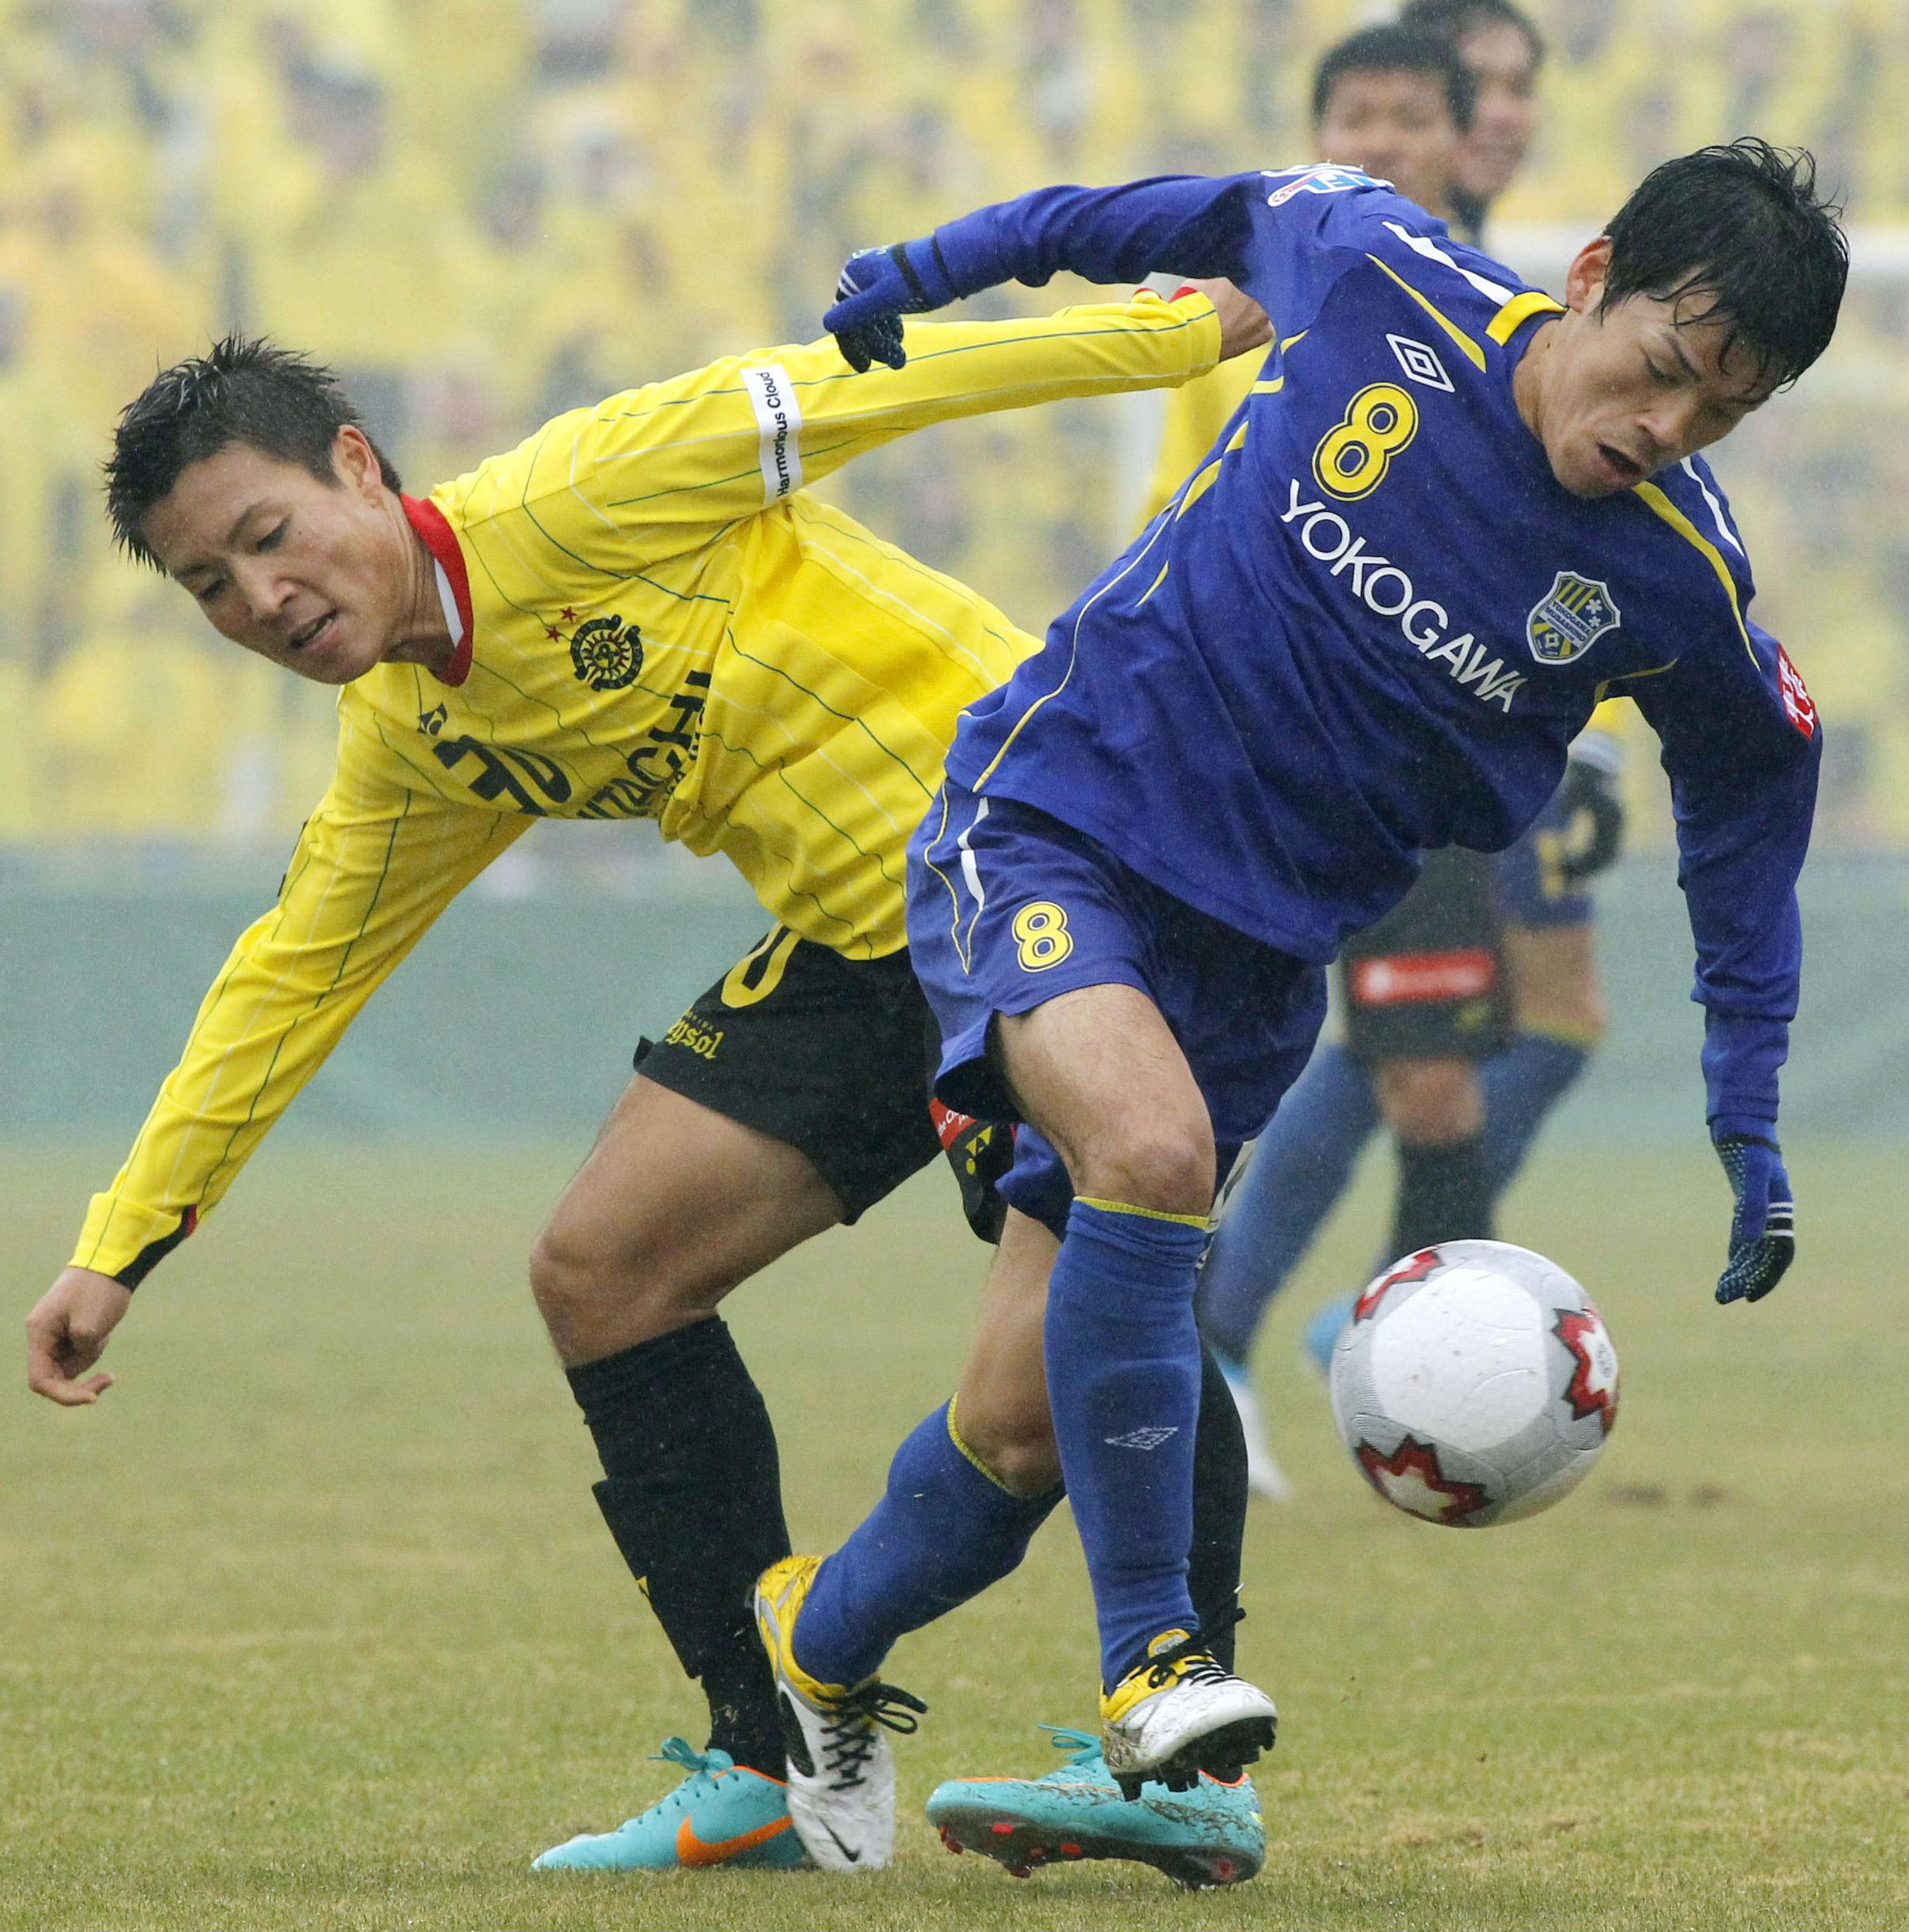 Take aim: Reysol forward Junya Tanaka takes a shot in front of  Yokogawa's Shunsuke Hayashi on Friday. Reysol won 1-0. | KYODO